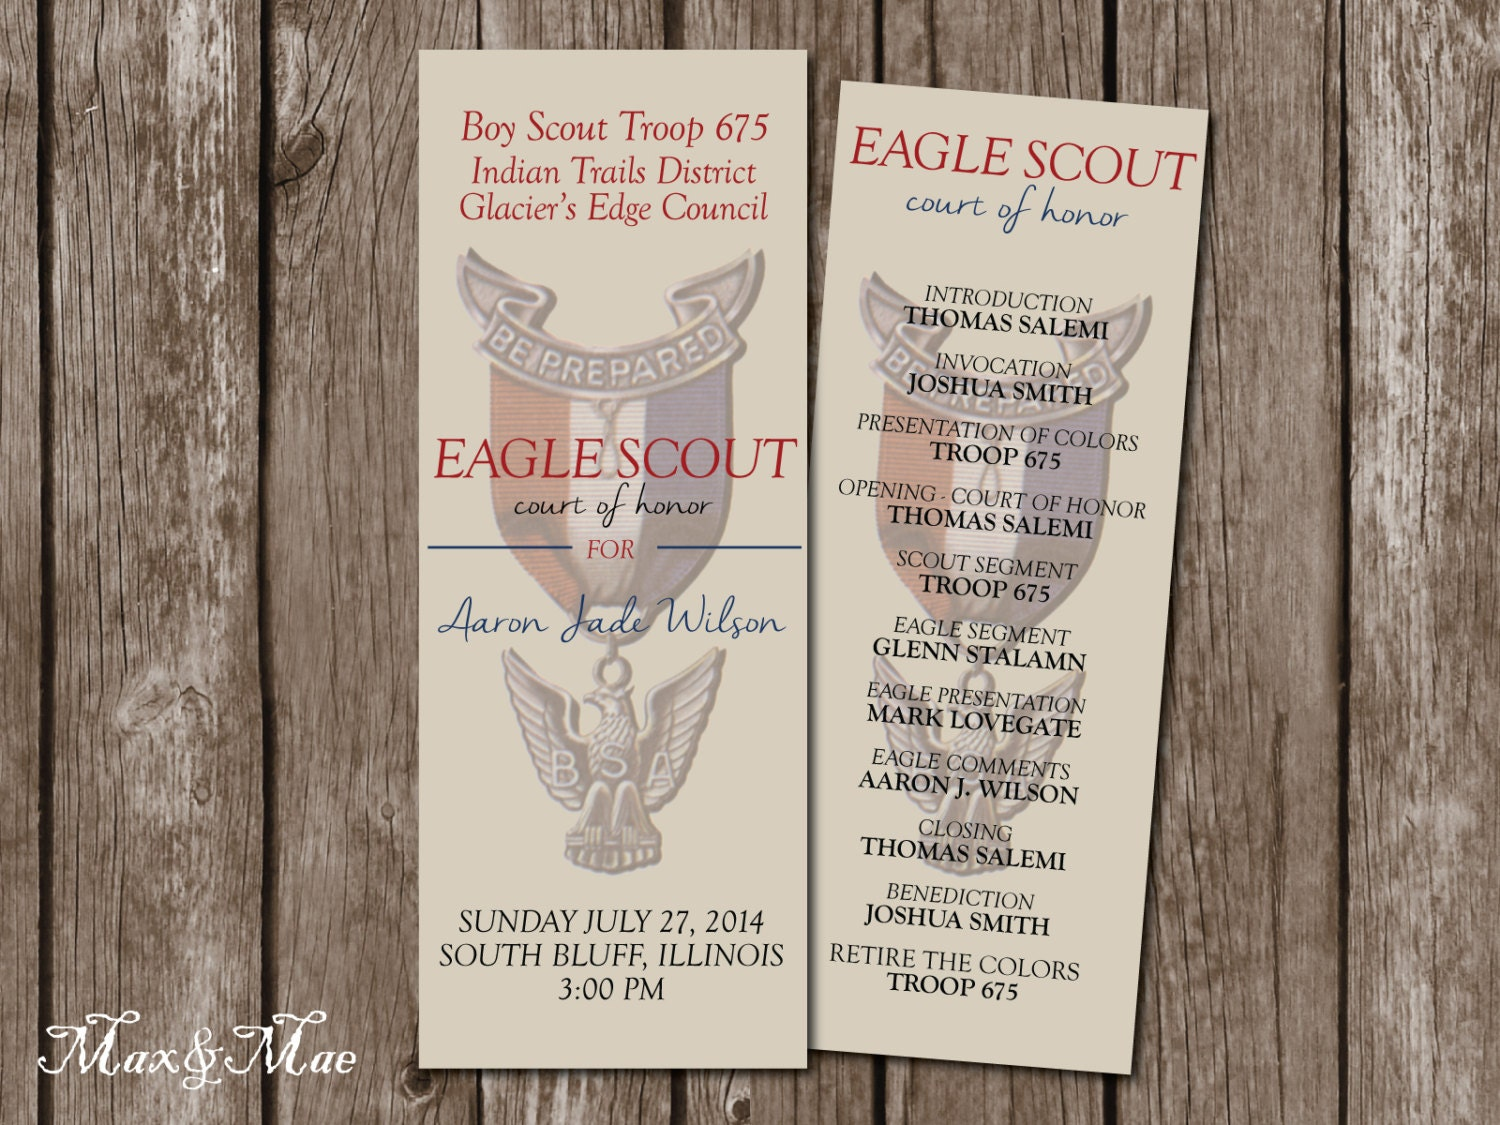 Eagle scout program court of honor eagle scout water bottle for Eagle scout court of honor program template